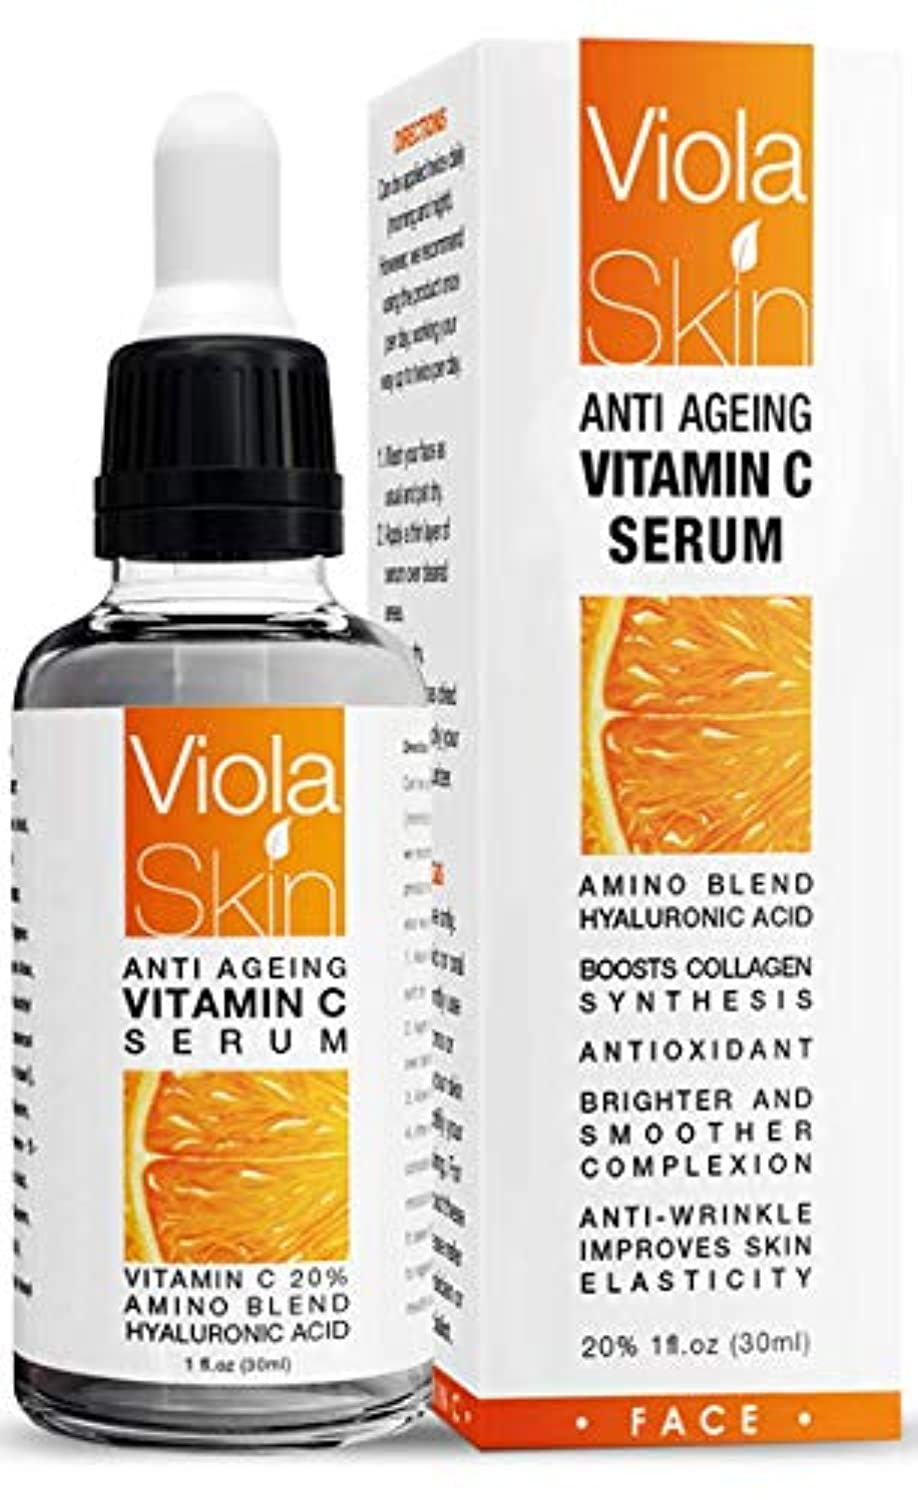 Vitamin C Serum For Face with Hyaluronic Acid Serum - smrt-life.com